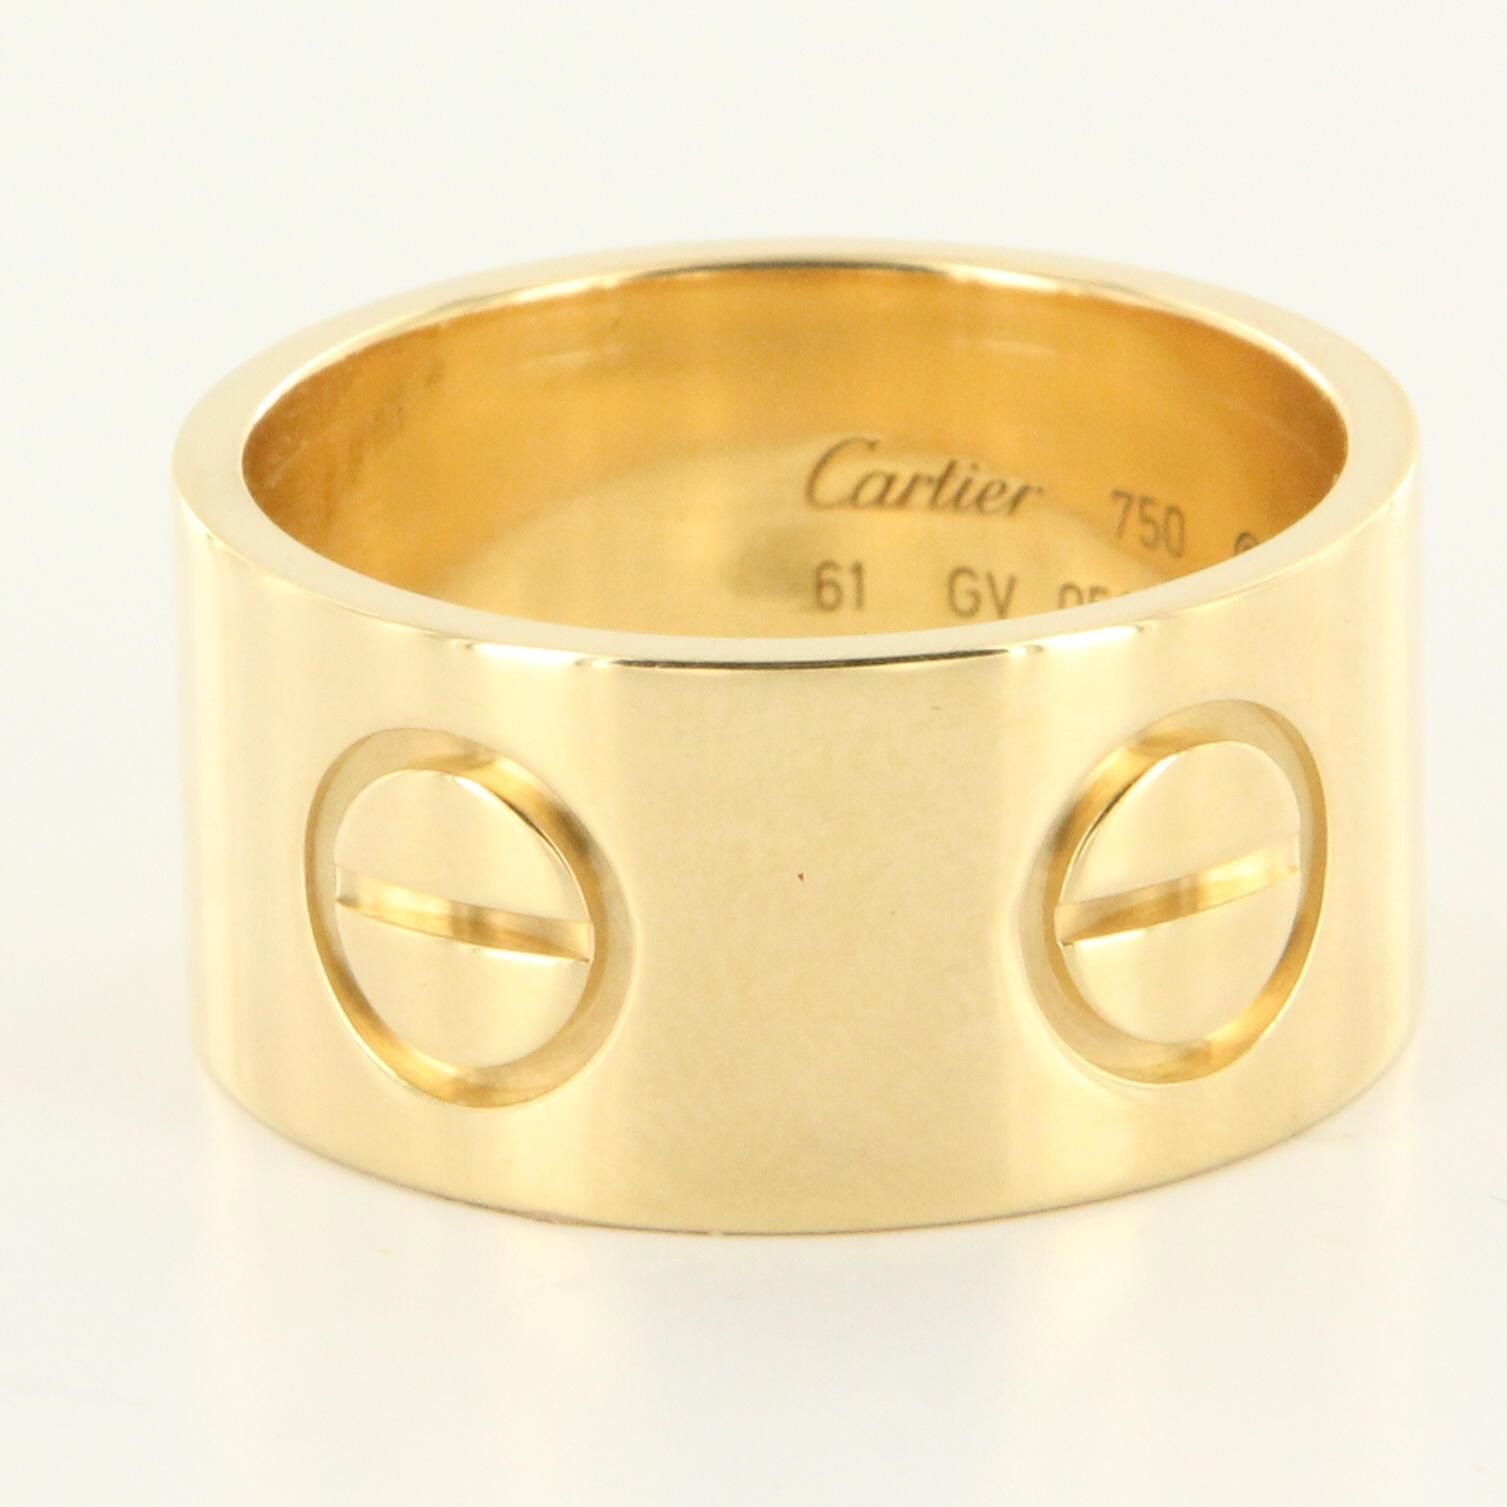 2ee926a9d7a Estate Cartier 18k Yellow Gold Wide 11mm Love Band Ring Designer Jewelry 61  9.5  2195